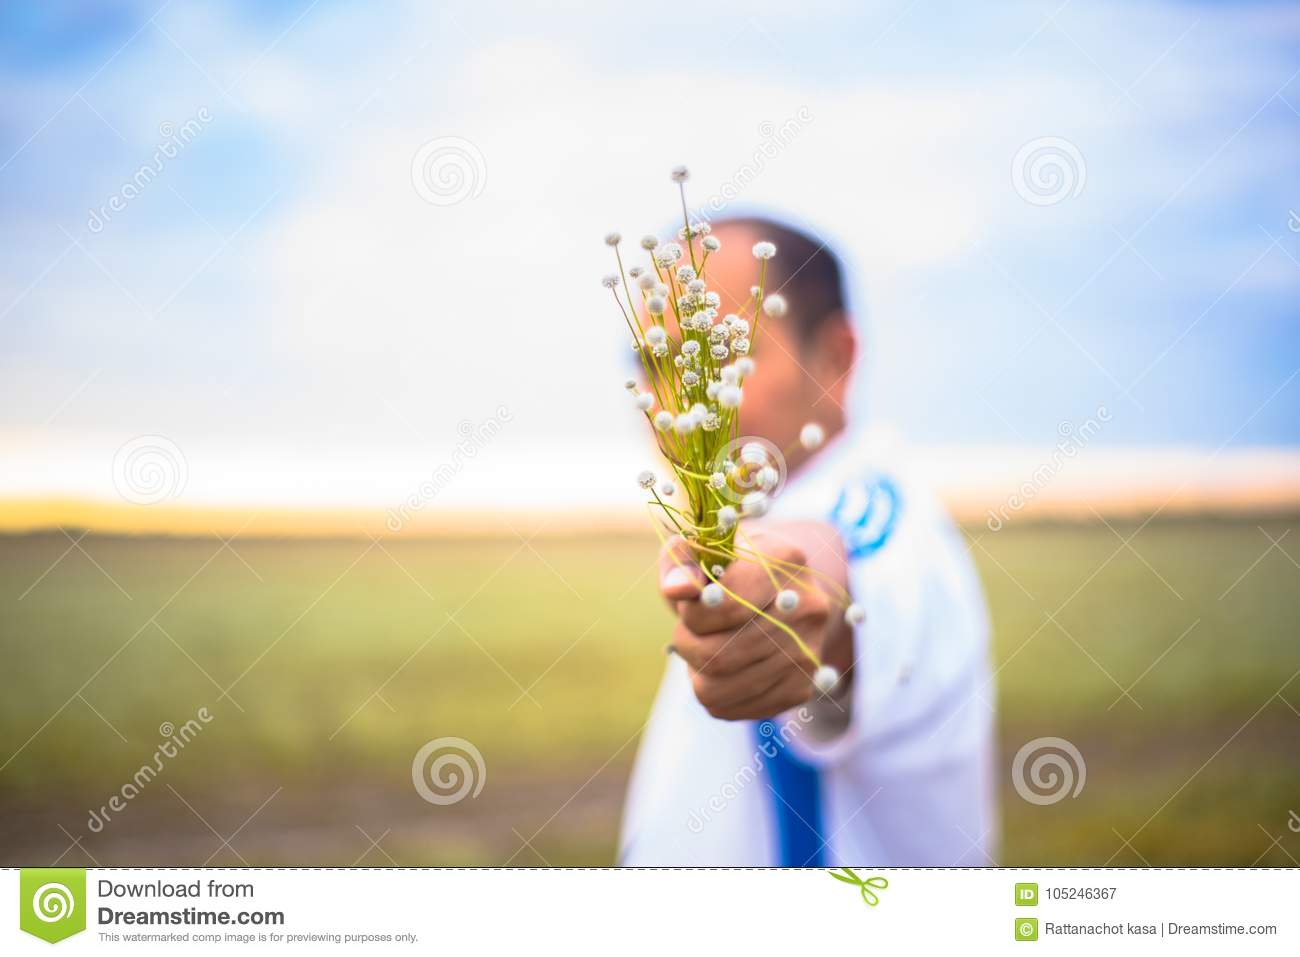 Blur People Is Holding Abeautiful Bouquet Of Autumn Grass Flowe